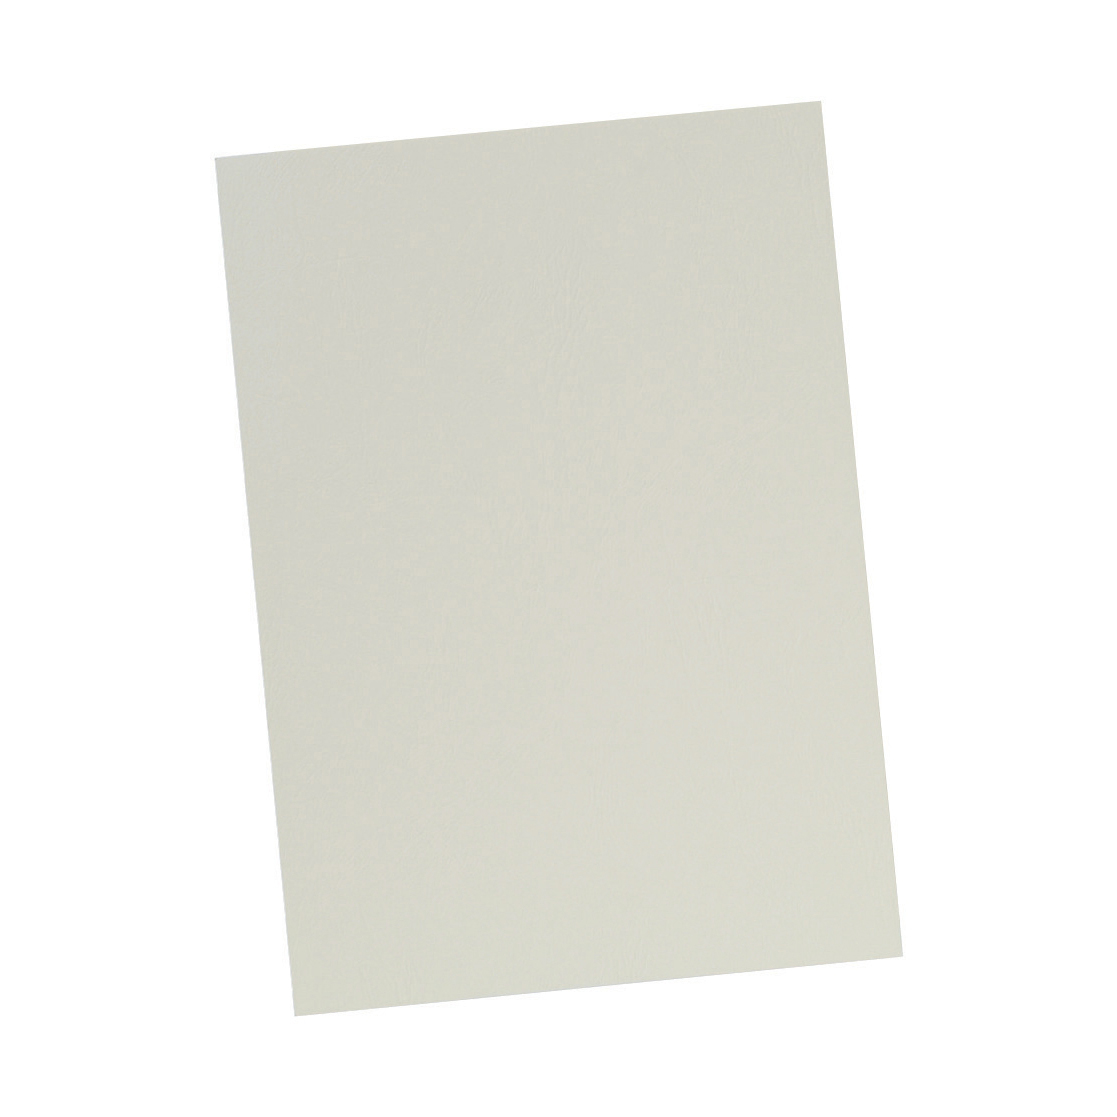 5 Star Office Binding Covers 240gsm Leathergrain A4 Ivory [Pack 100]